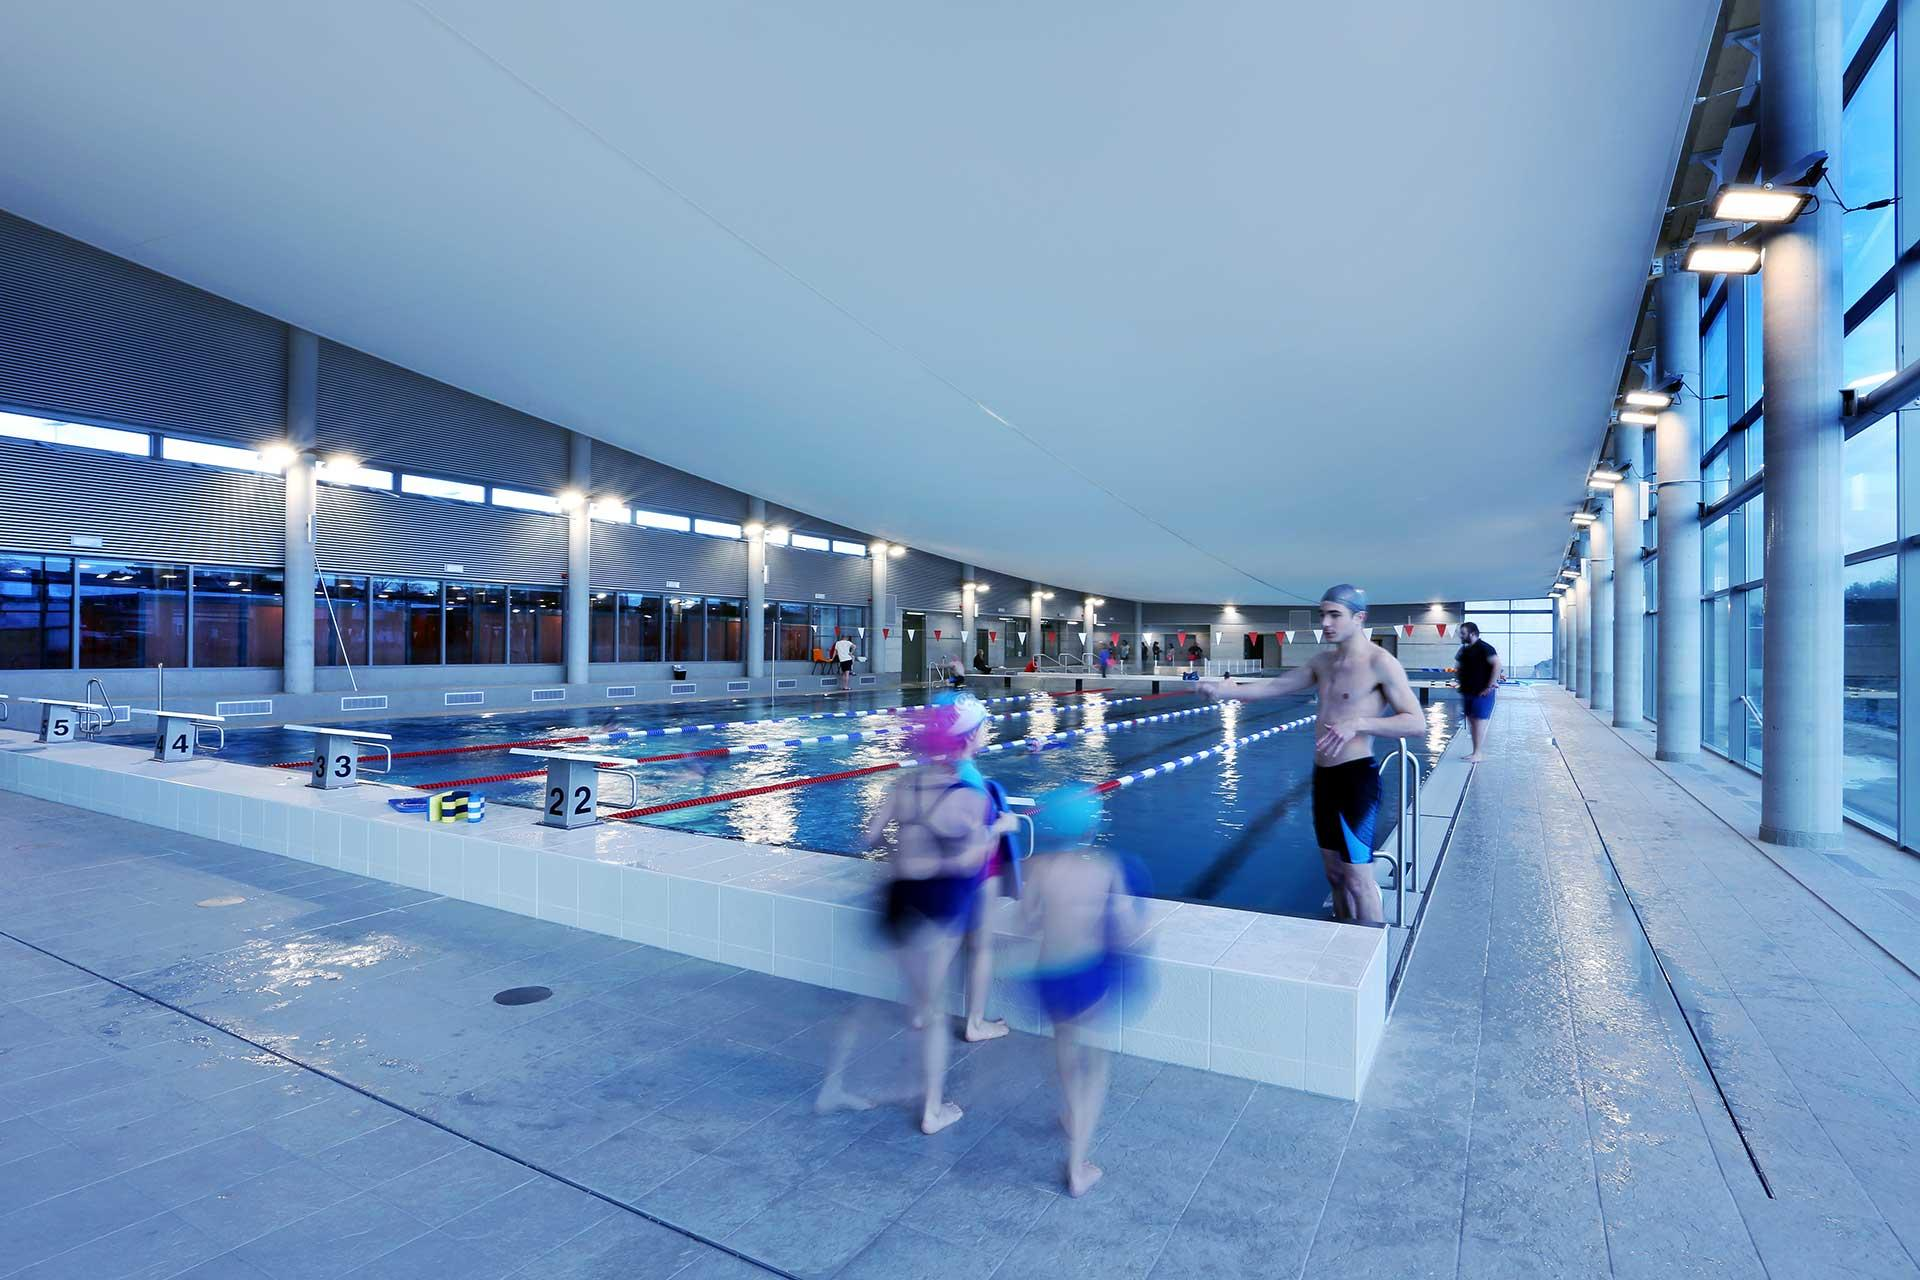 Schréder sports lighting solution cuts energy costs by 67% for Ans swimming pool